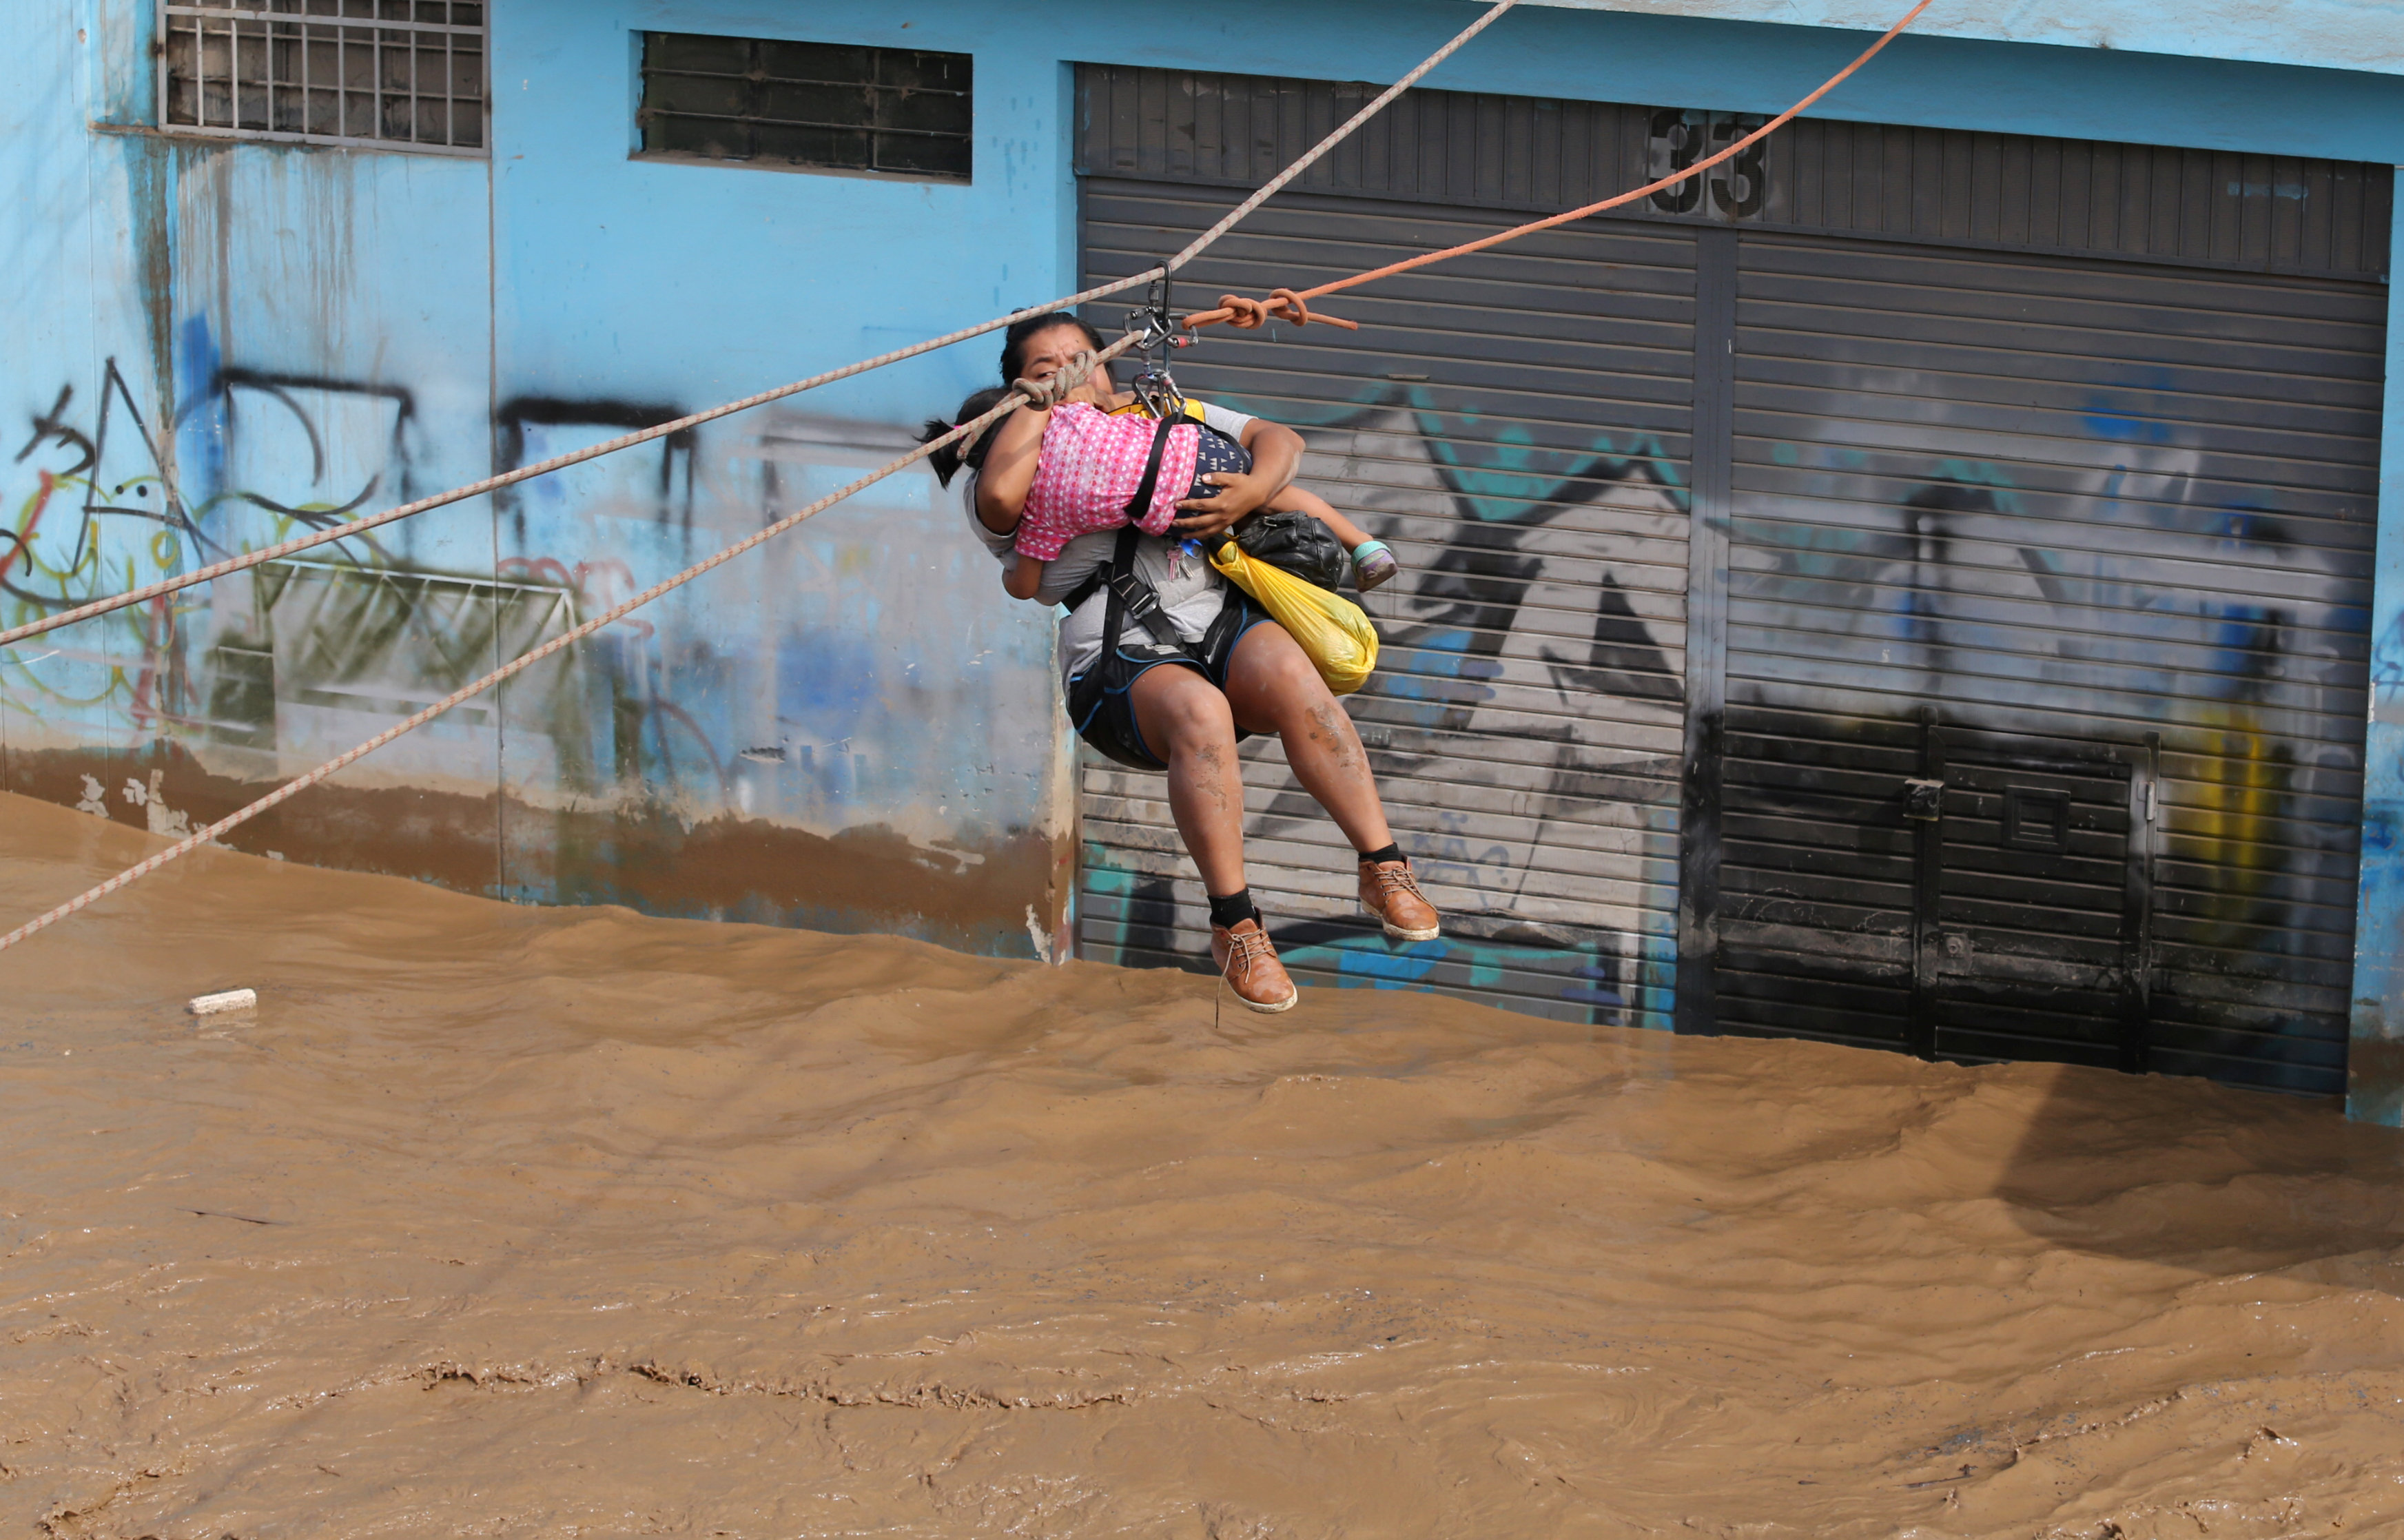 A woman and a child are evacuated with a zip line after the Huayco river overflooded its banks sending torrents of mud and water rushing through the streets in Huachipa, Peru, March 17, 2017. REUTERS/Guadalupe Pardo